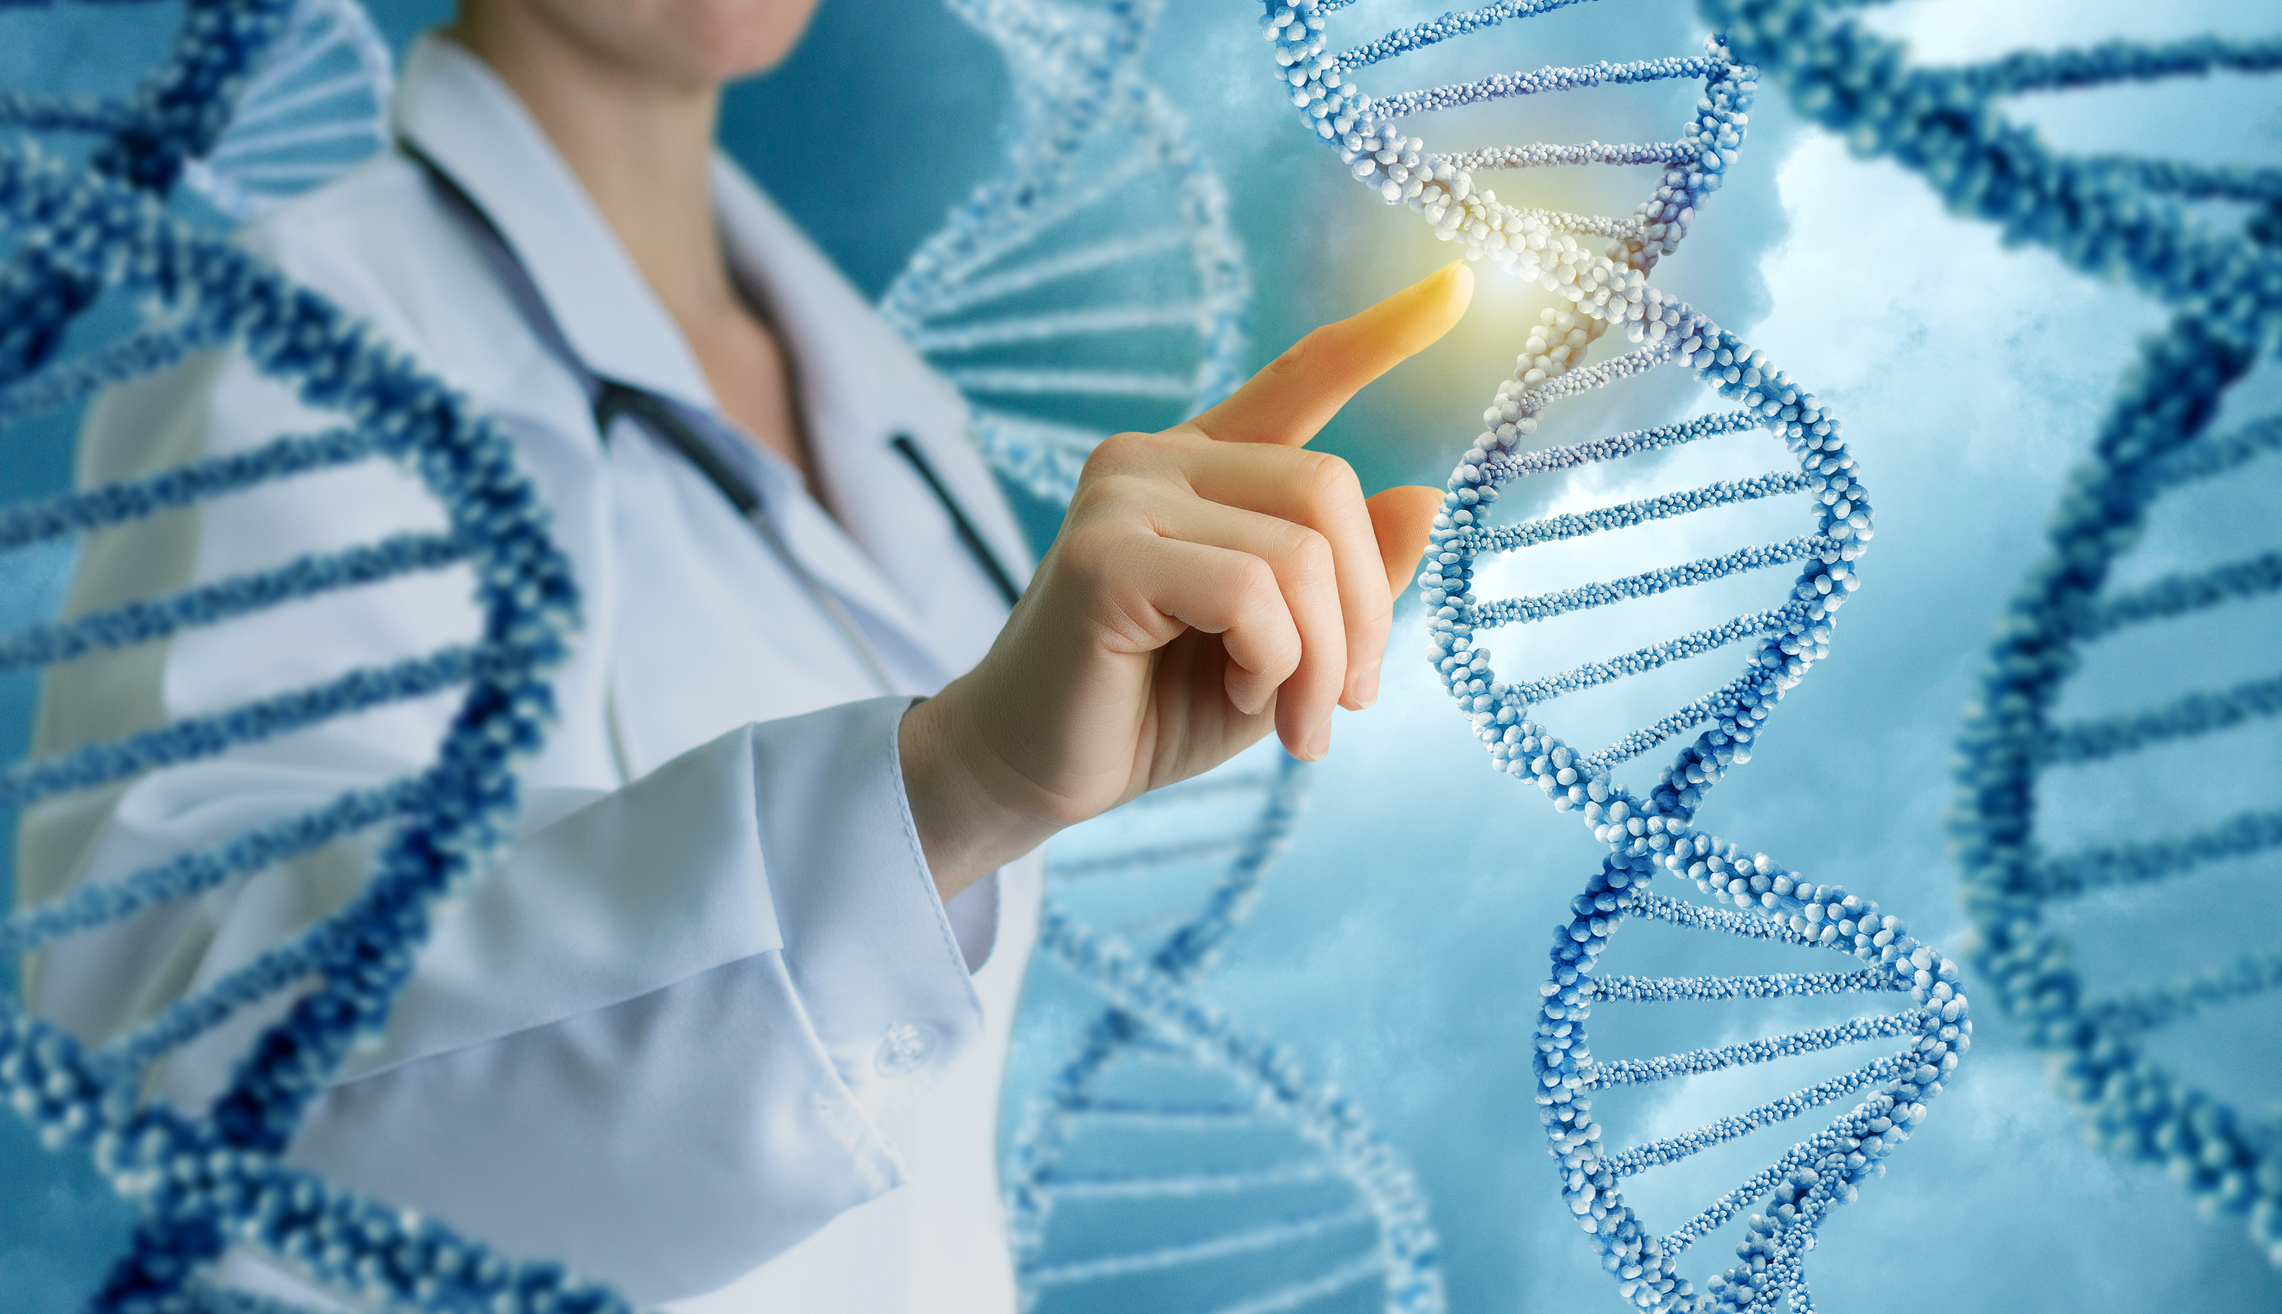 Introduction to Gene Therapy